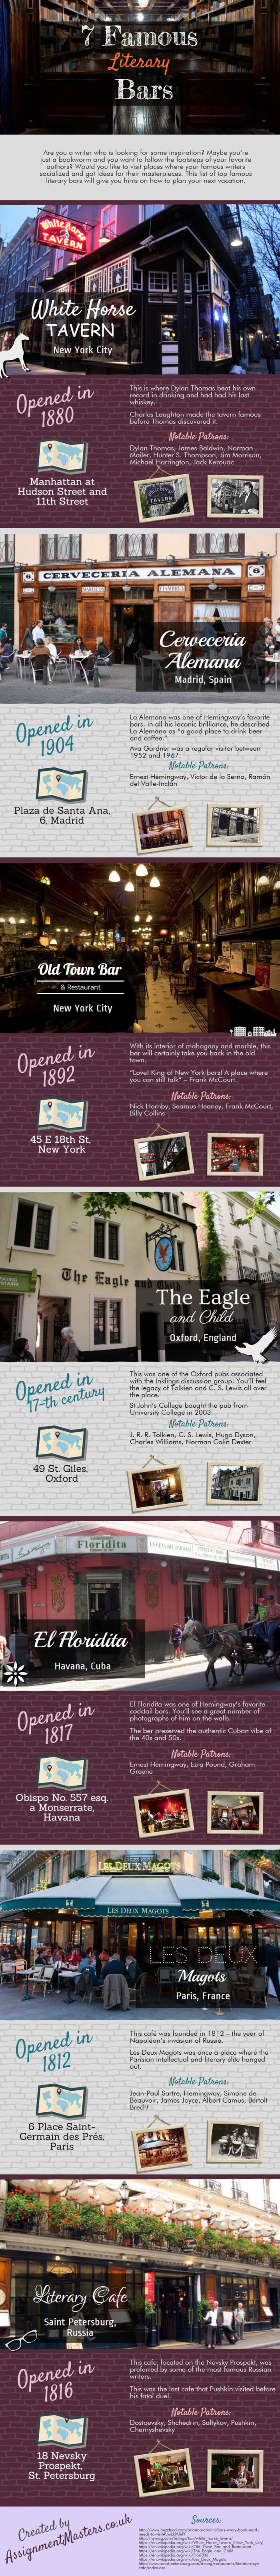 Infographic-Top-7-Famous-Literary-Bars-by-AssignmentMastrers_co_uk